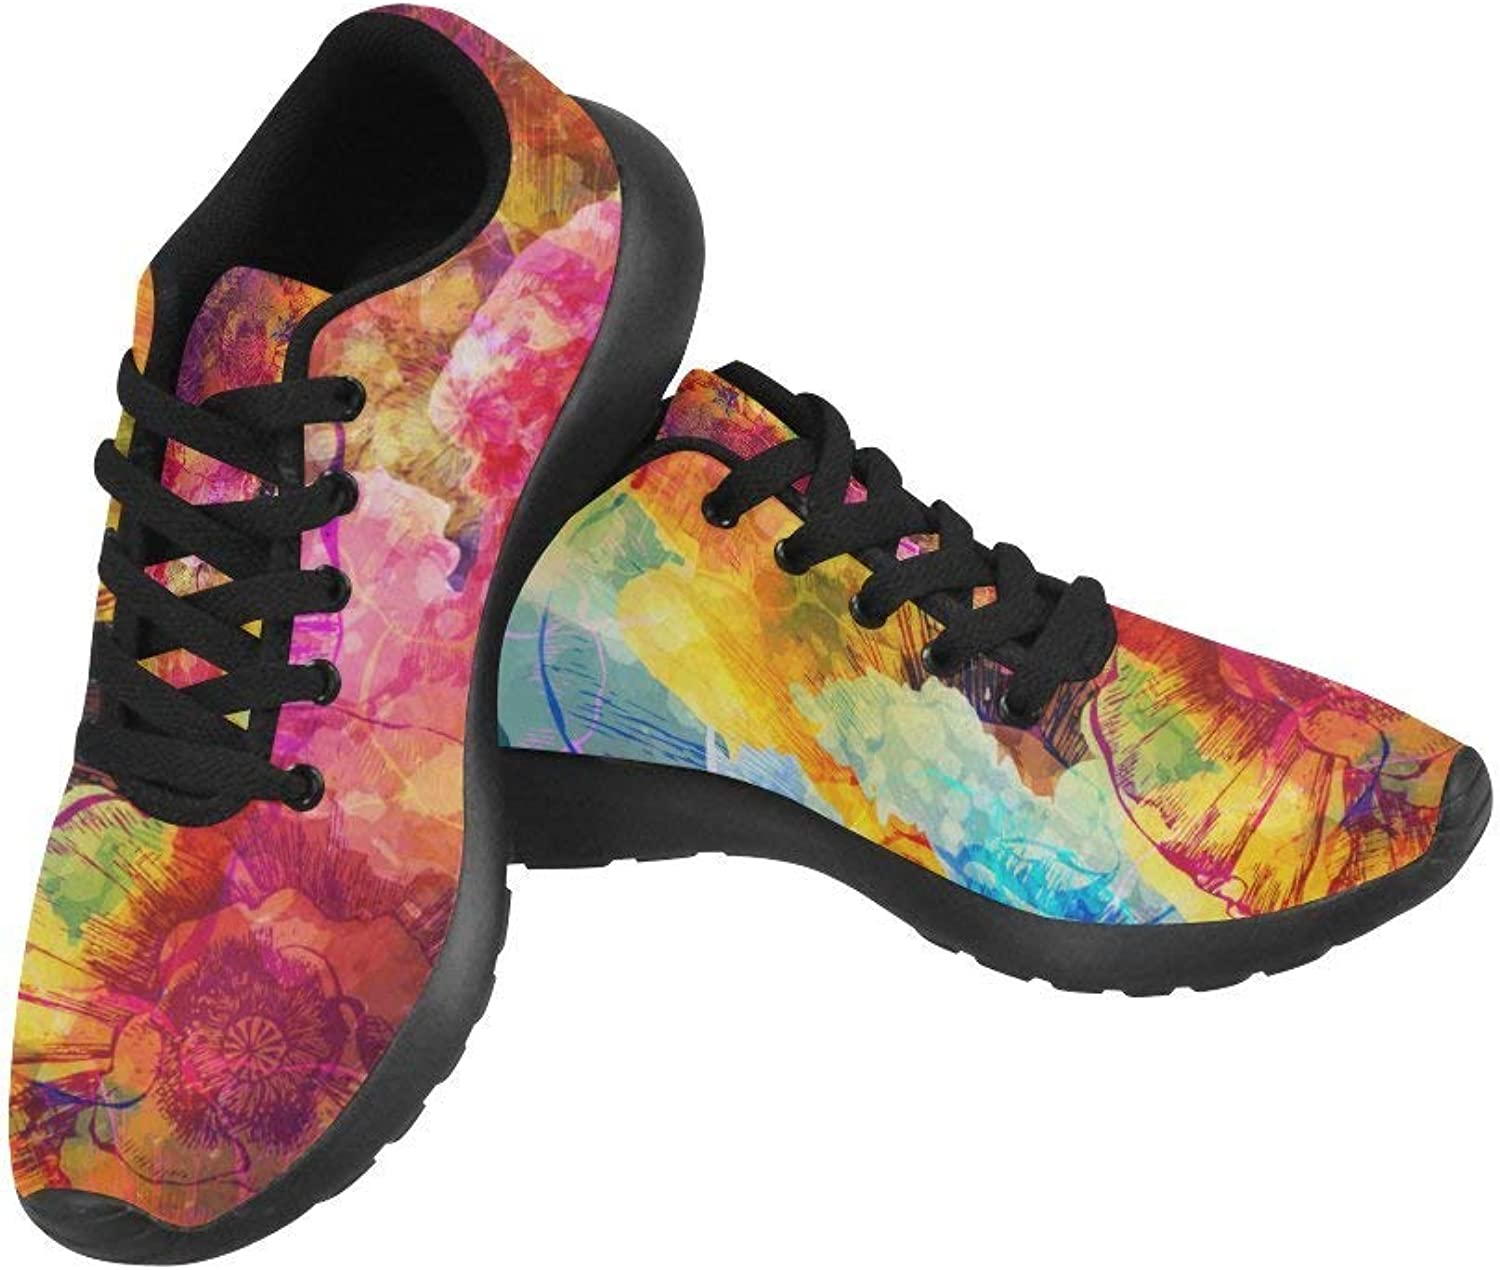 InterestPrint Watercolor Doodle Women's Running shoes Casual Lightweight Athletic Sneakers US Size 6-15